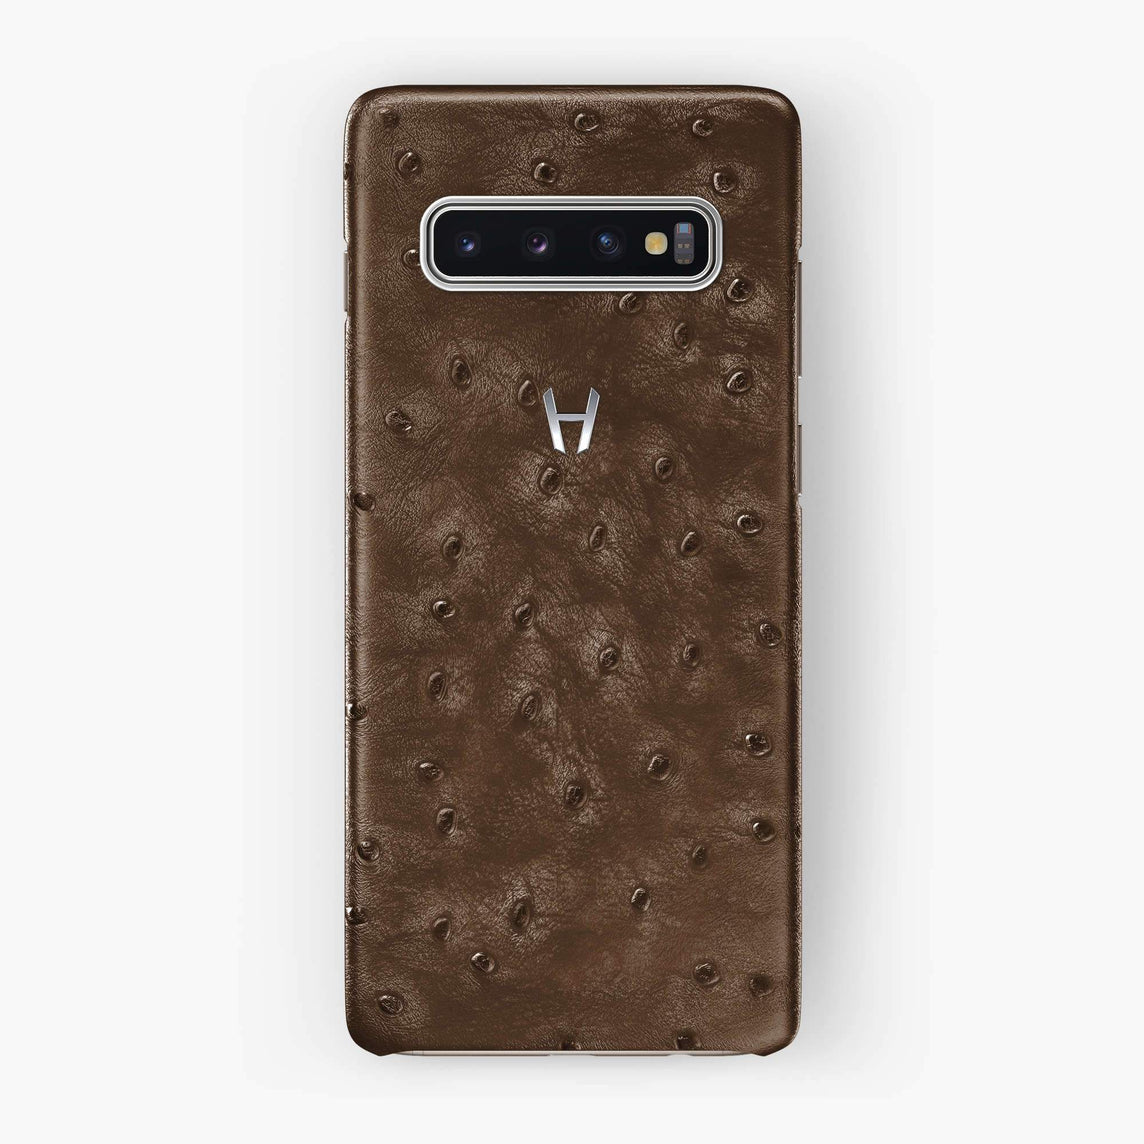 Ostrich Case Samsung S10 Plus | Tobacco - Stainless Steel